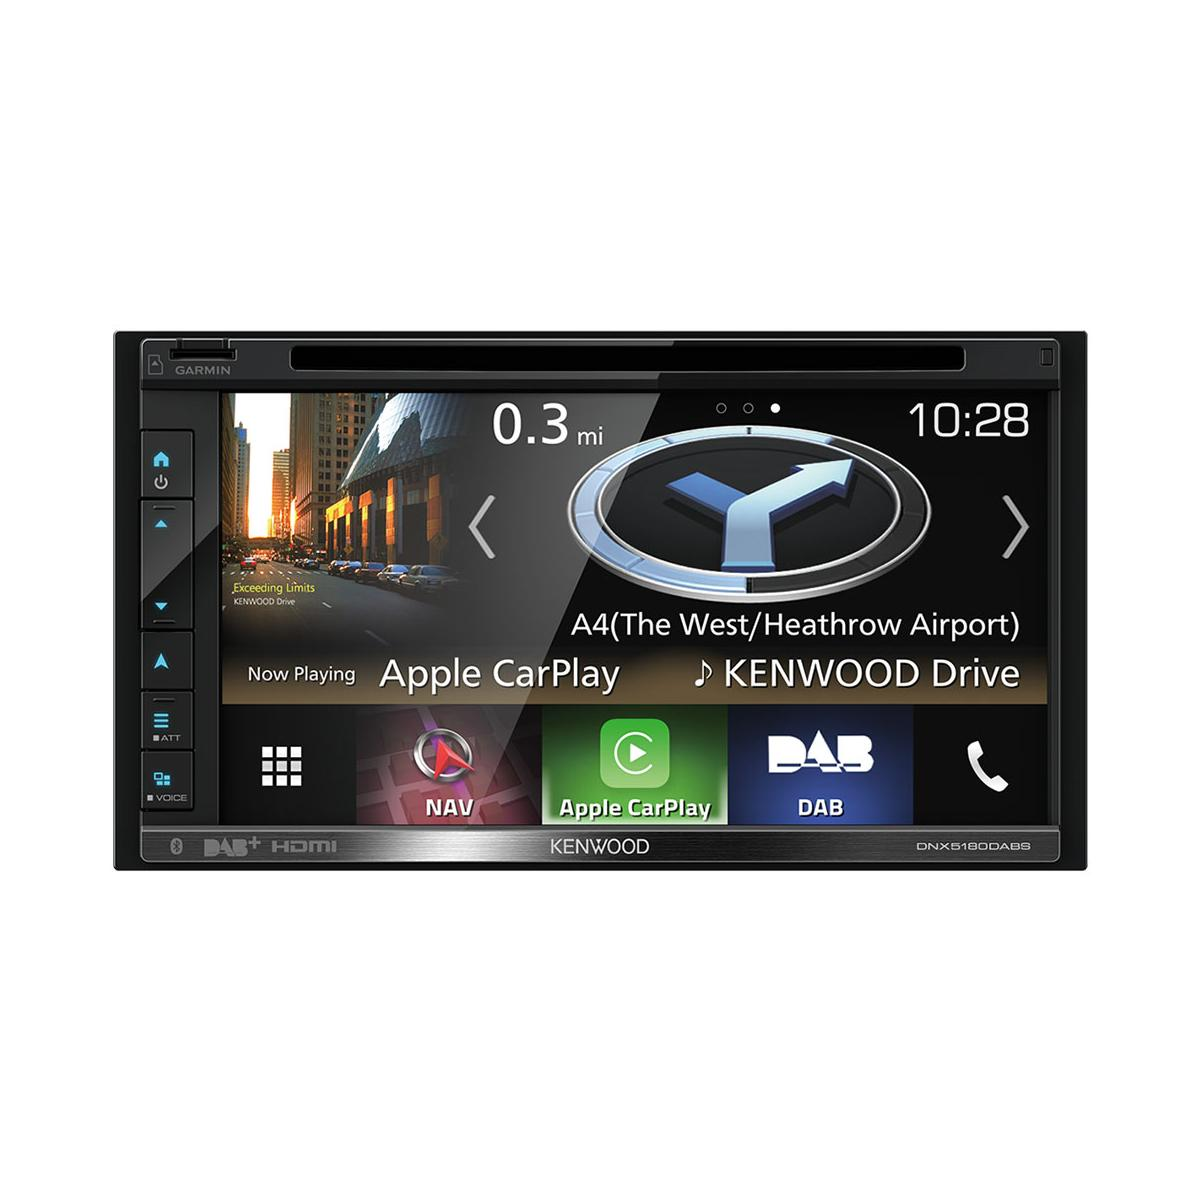 In Car Sat Nav Kenwood DNX5180DABS